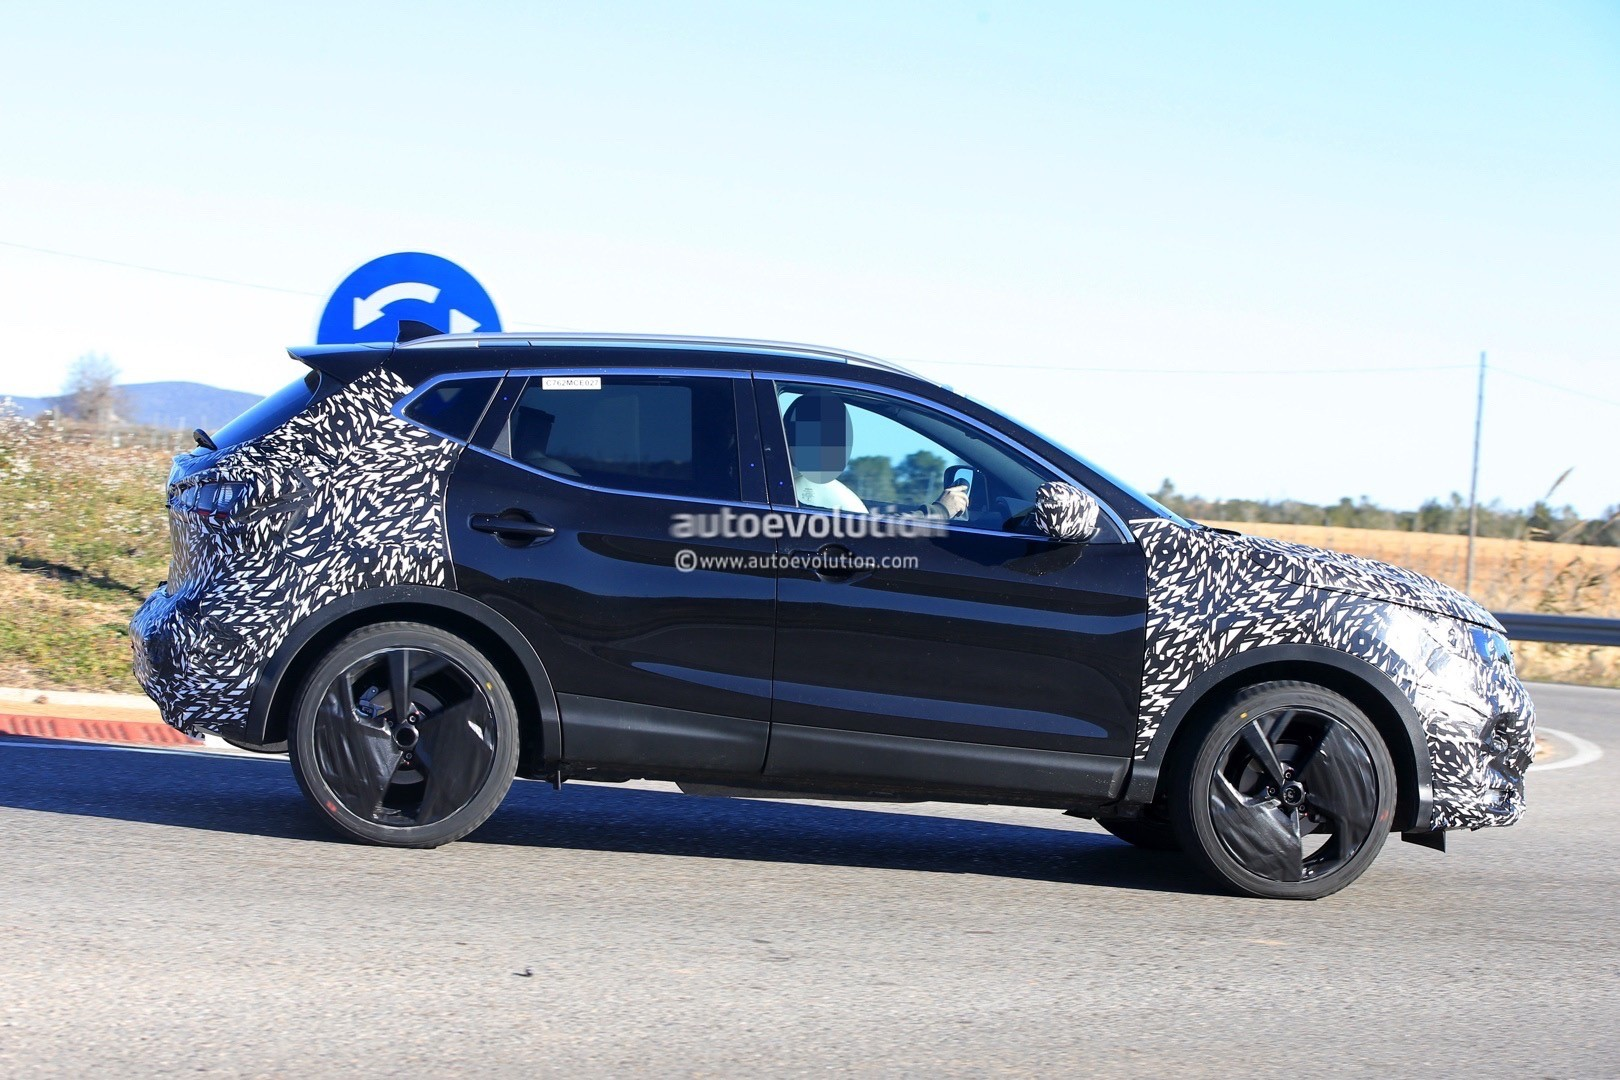 2017 - [Nissan] Qashqai restylé 2018-nissan-qashqai-facelift-spied-for-the-first-time-has-concept-car-wheels_5